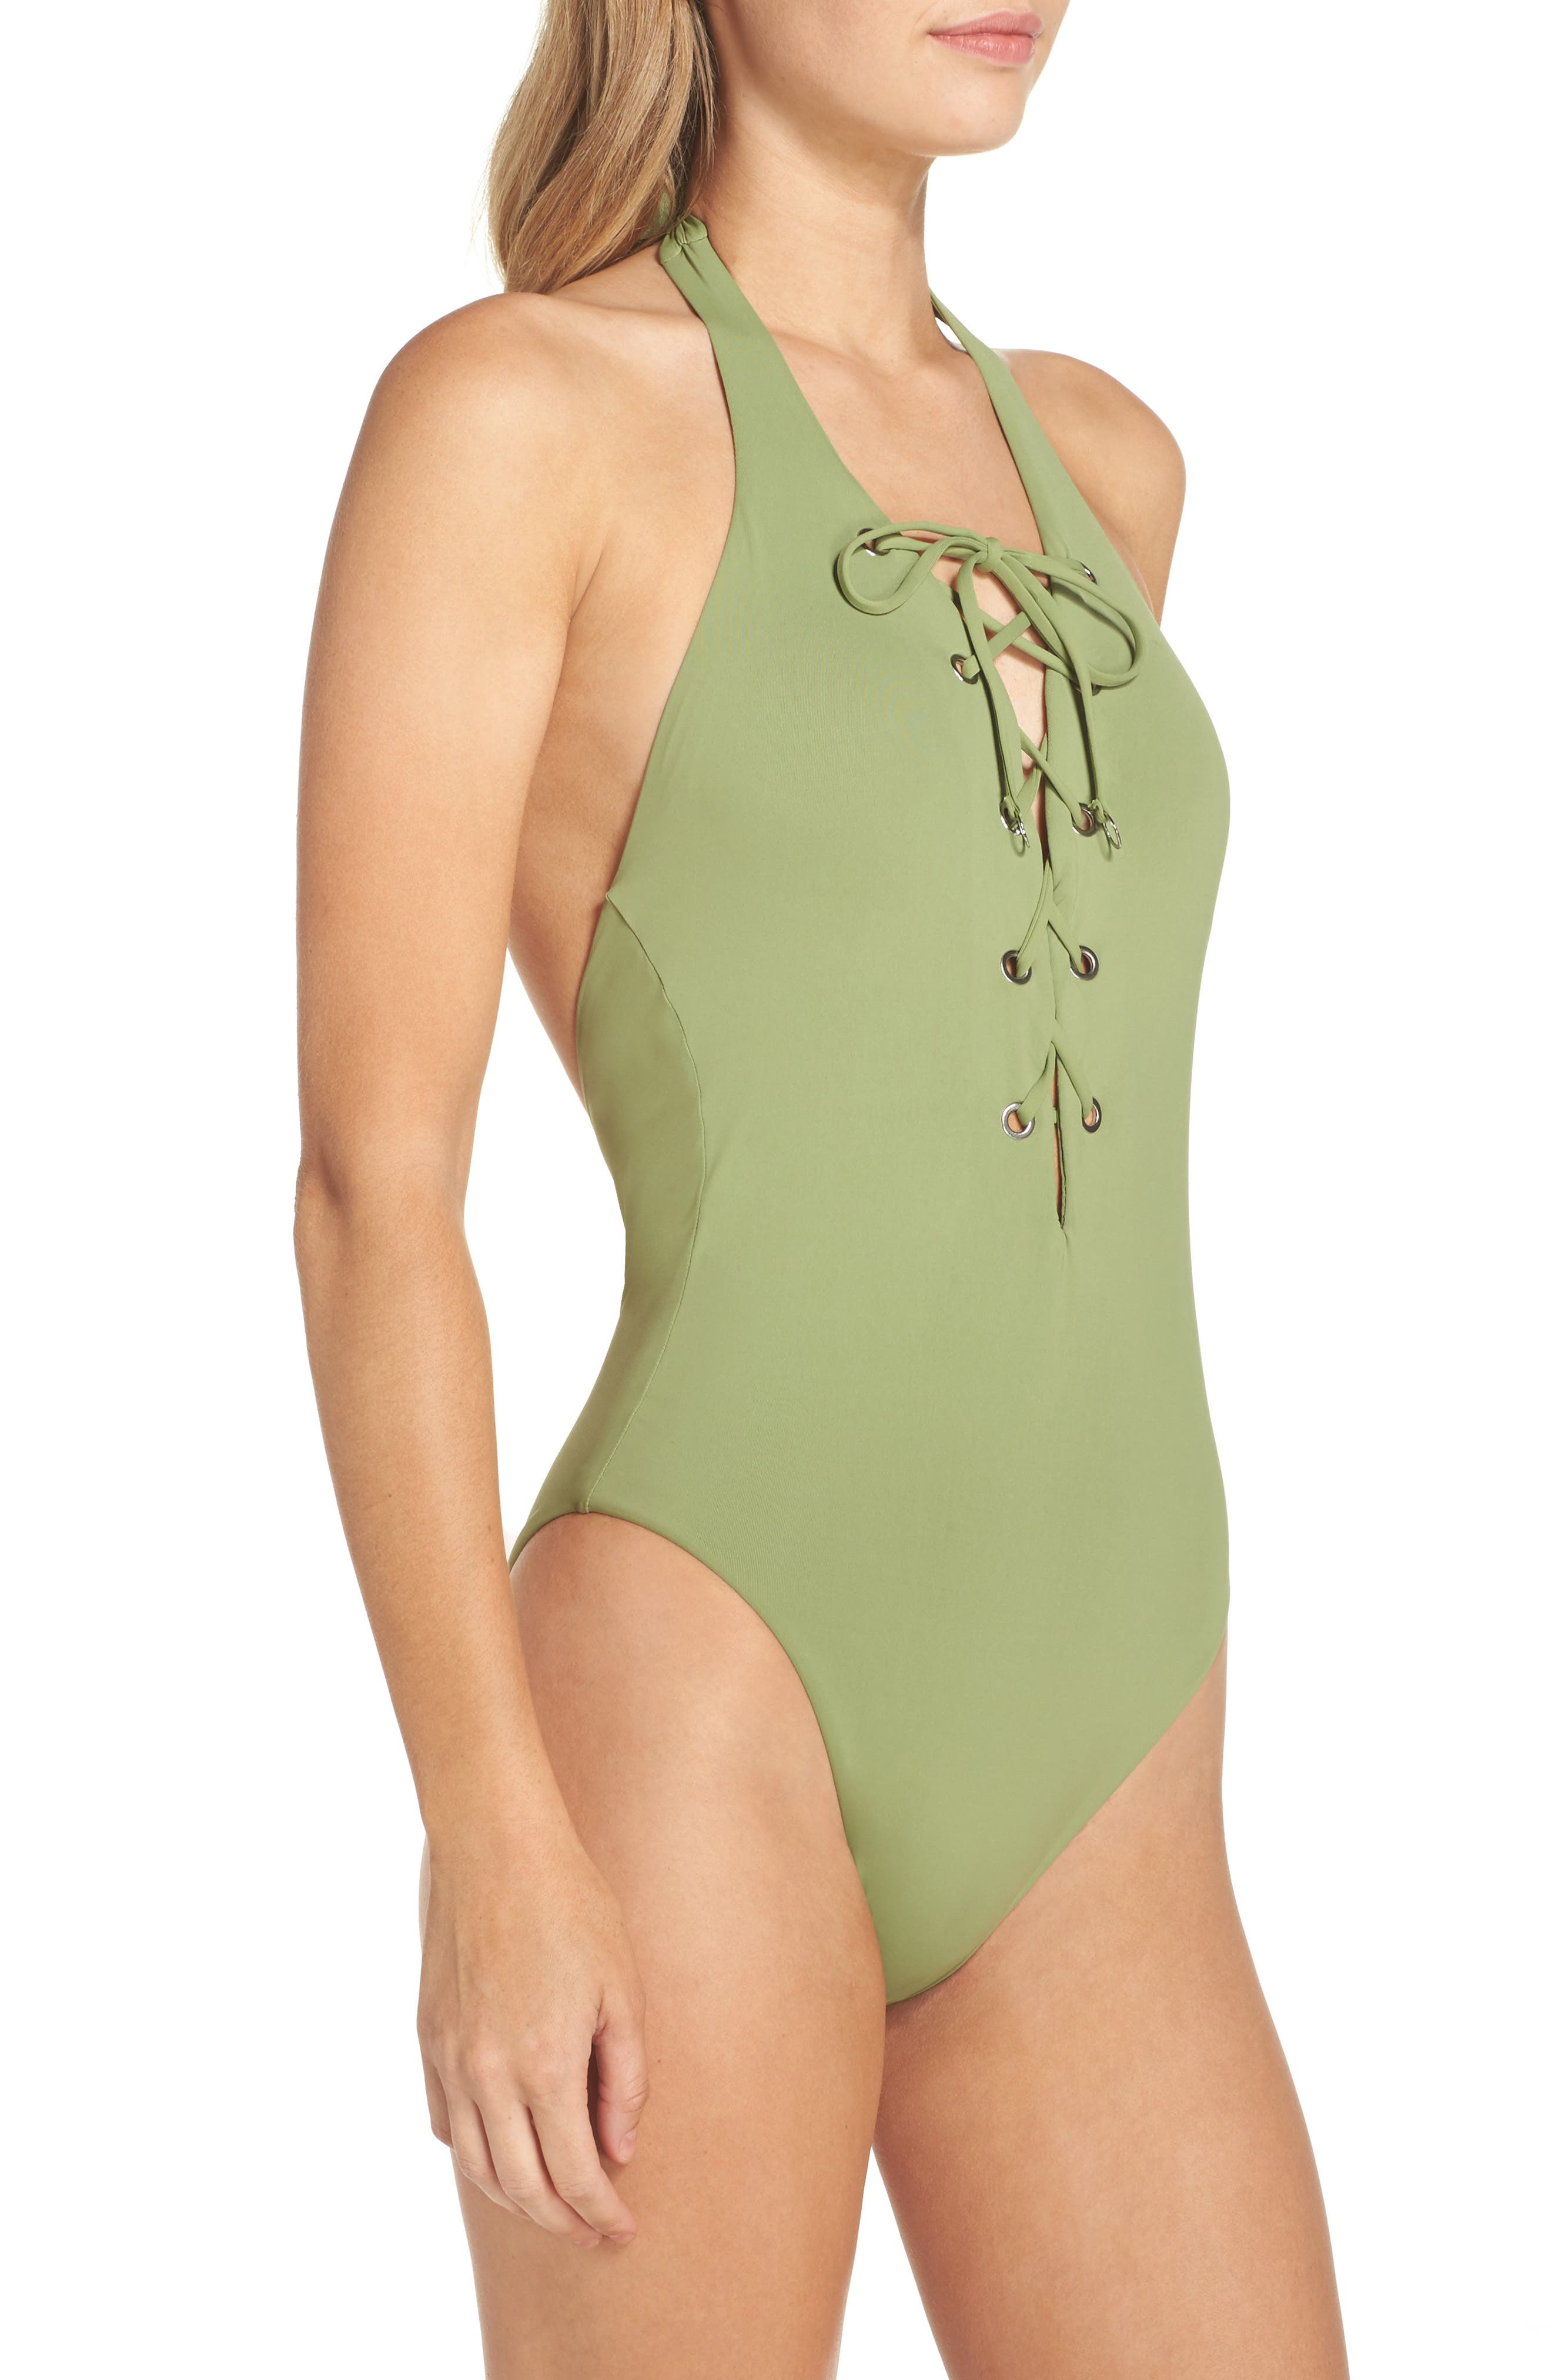 Lace-Up One-Piece Halter Swimsuit,                             Alternate thumbnail 3, color,                             300